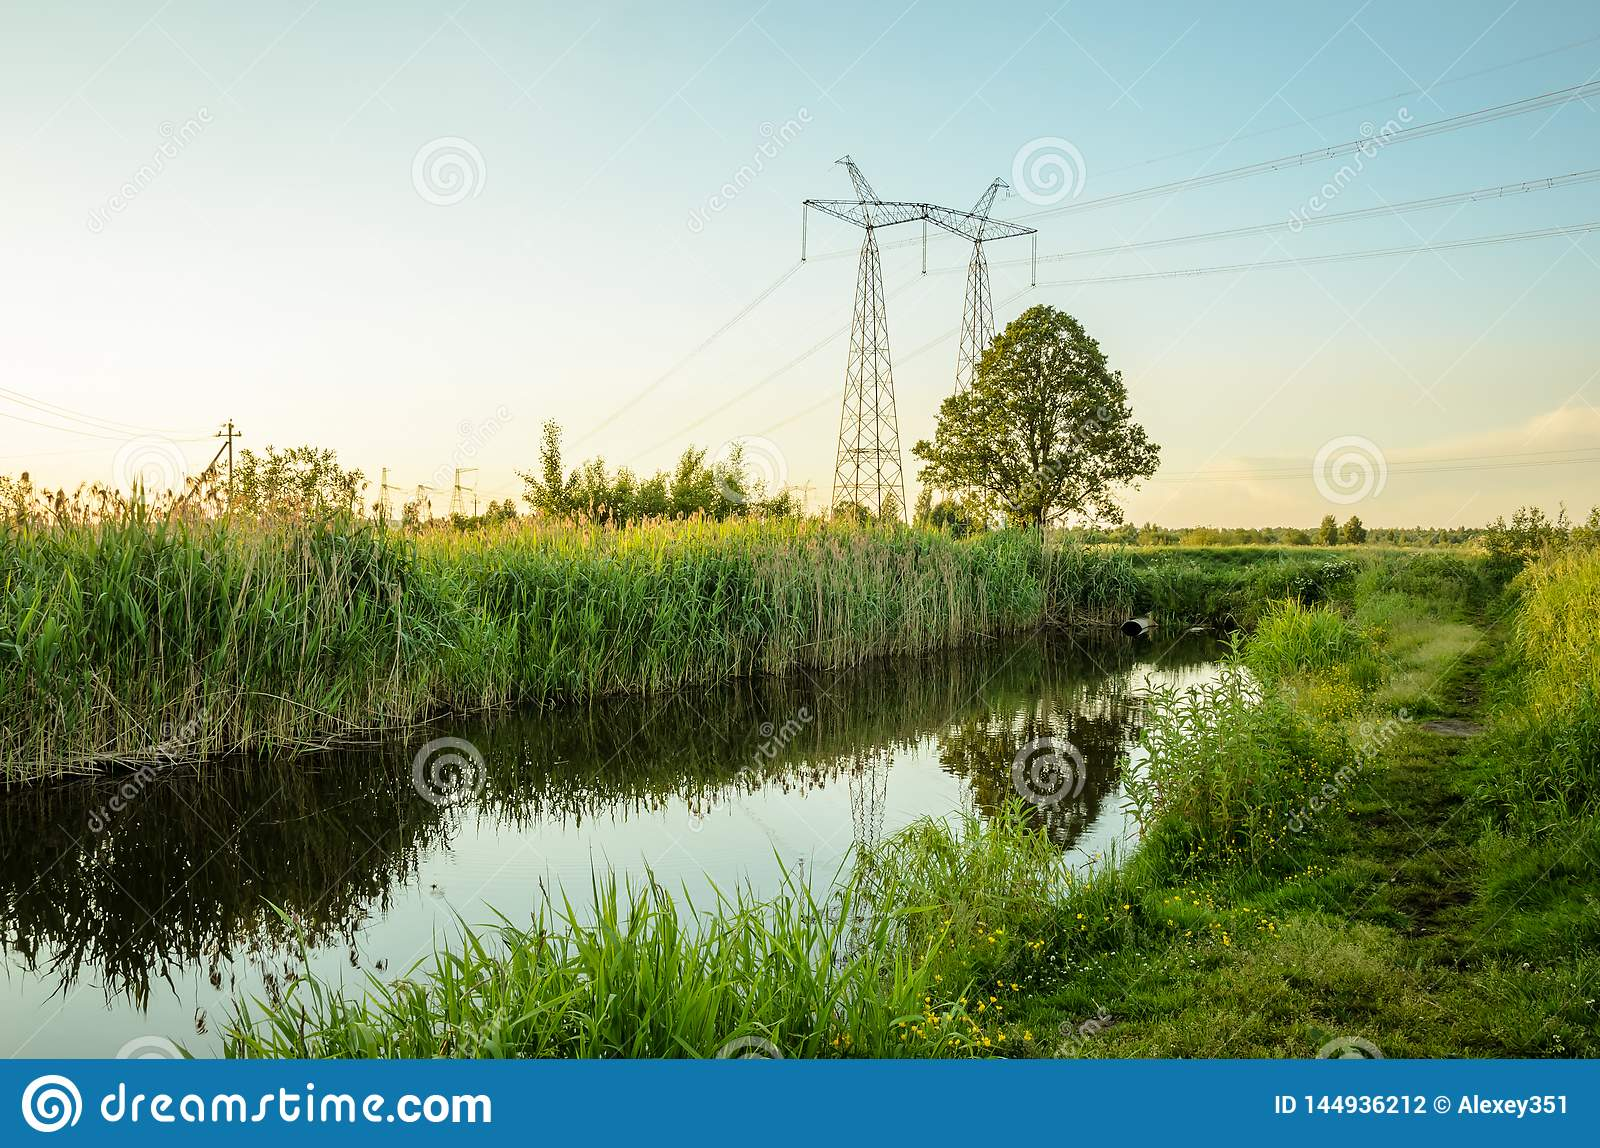 Ecology concept: sewage from the sewer pollutes a lake river/water gushing from the sewer to the river